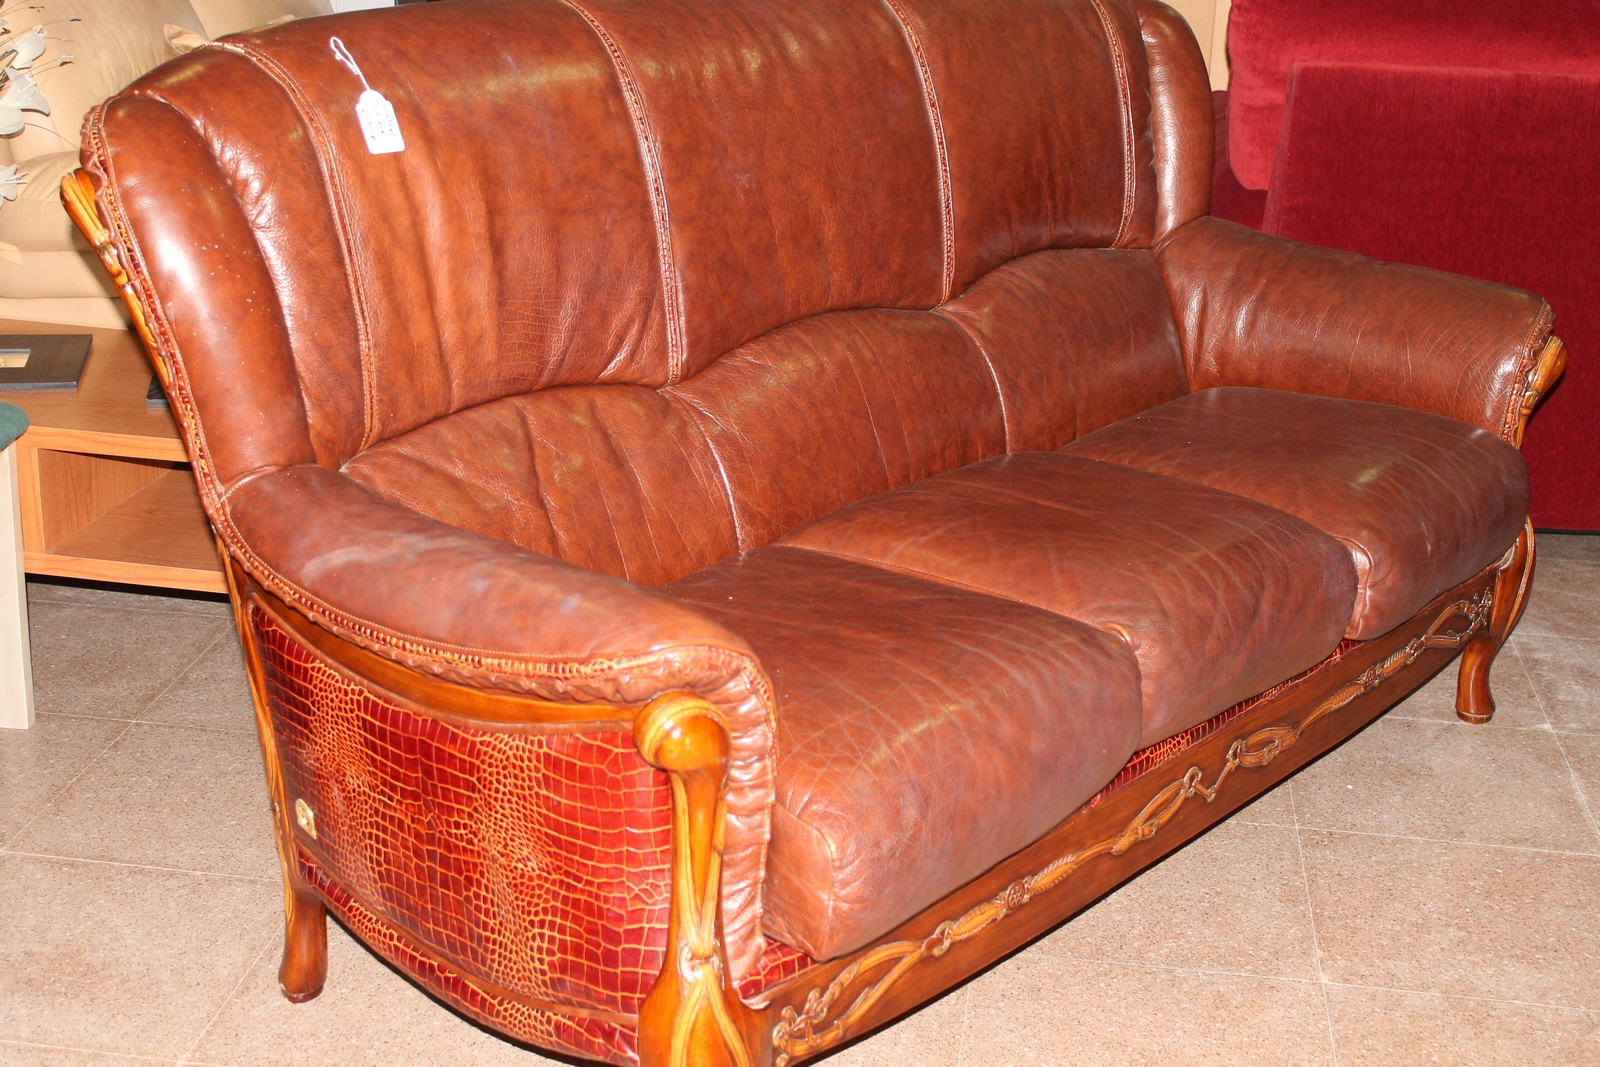 New2you Furniture Second Hand Sofas Sofa Beds For The Living